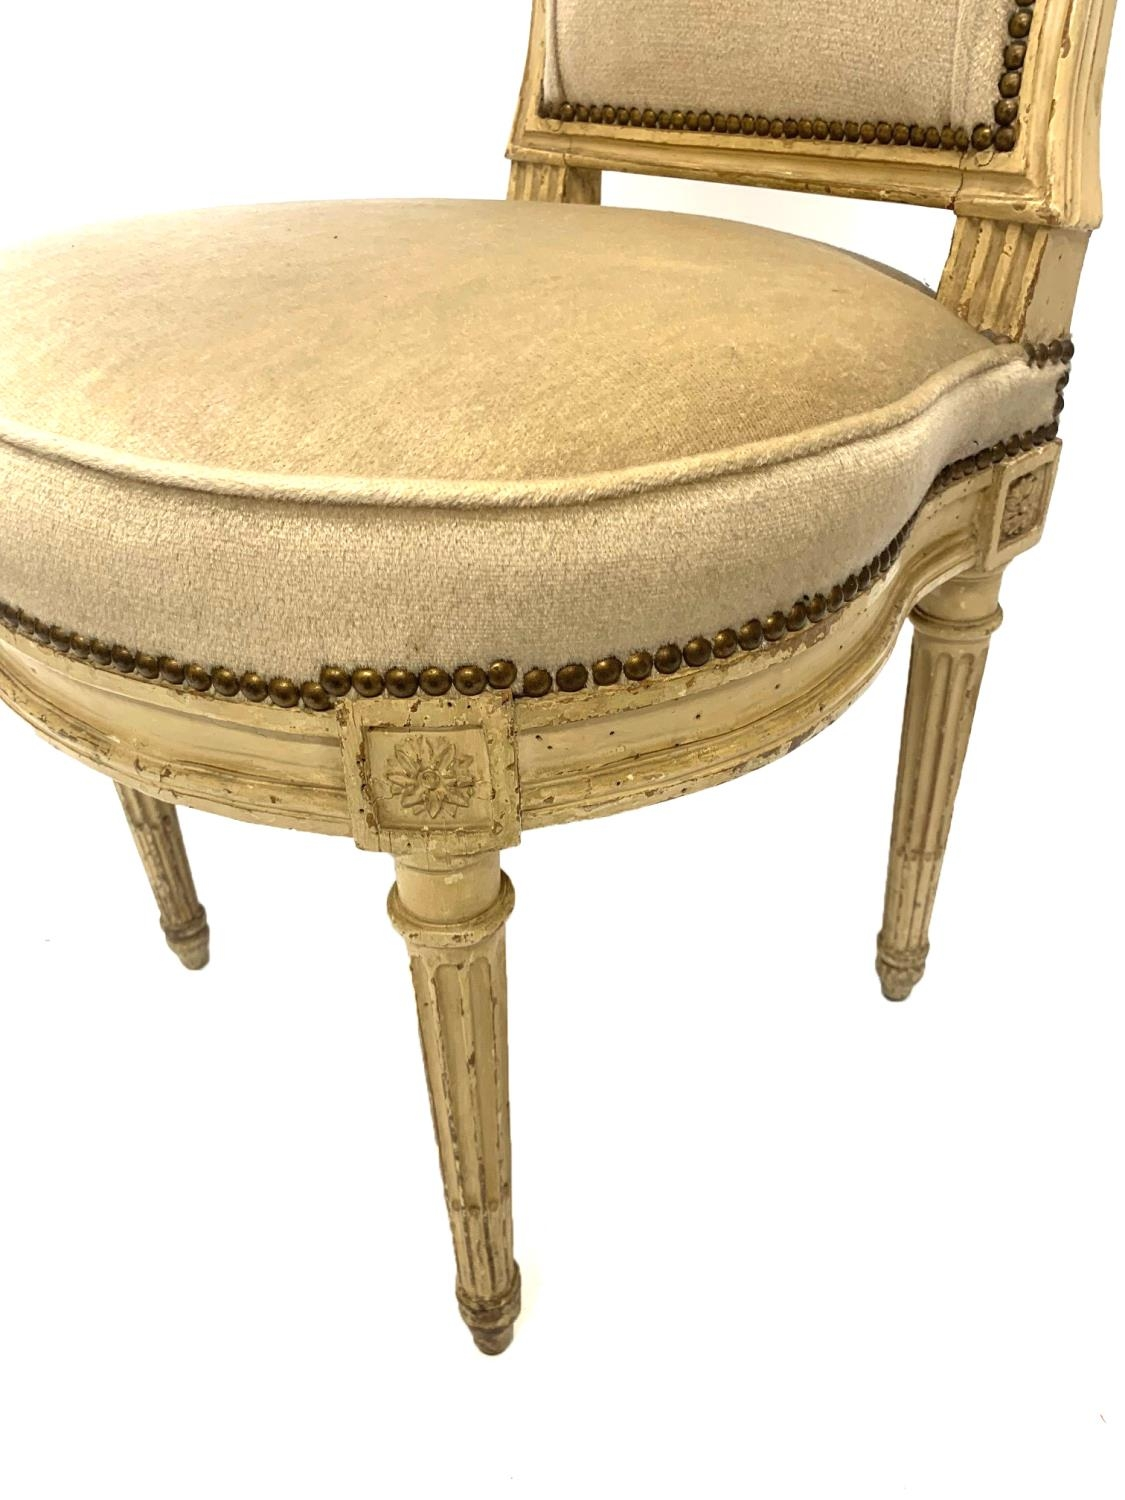 GEORGES JACOB, CIRCA 1775, A RARE SET OF SIX 18TH CENTURY LOUIS XVI PAINTED CARVED WOOD SIDE - Image 8 of 13